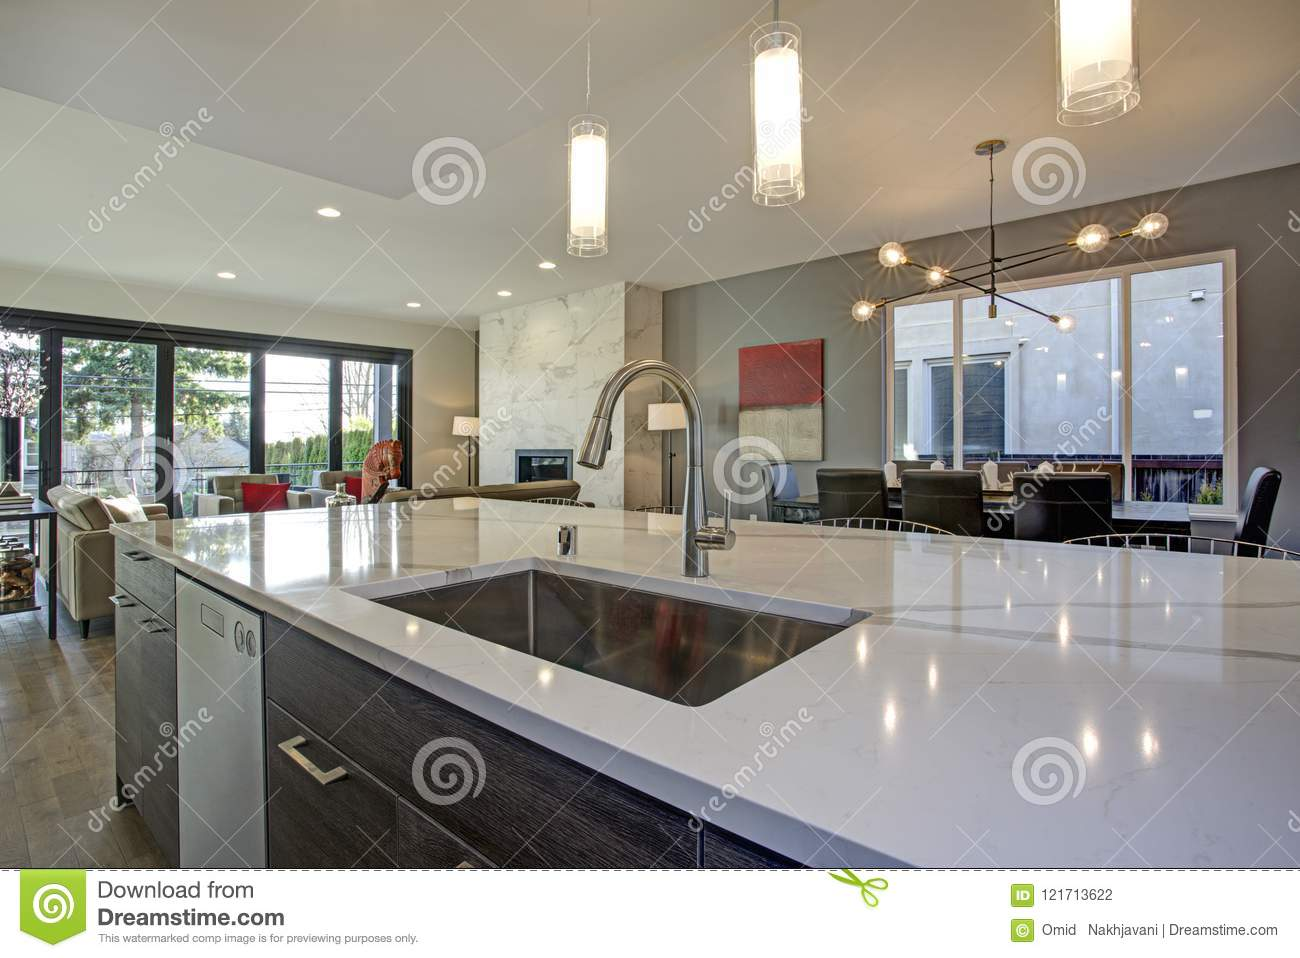 White And Gray Kitchen Room Interior With Open Floor Plan Stock